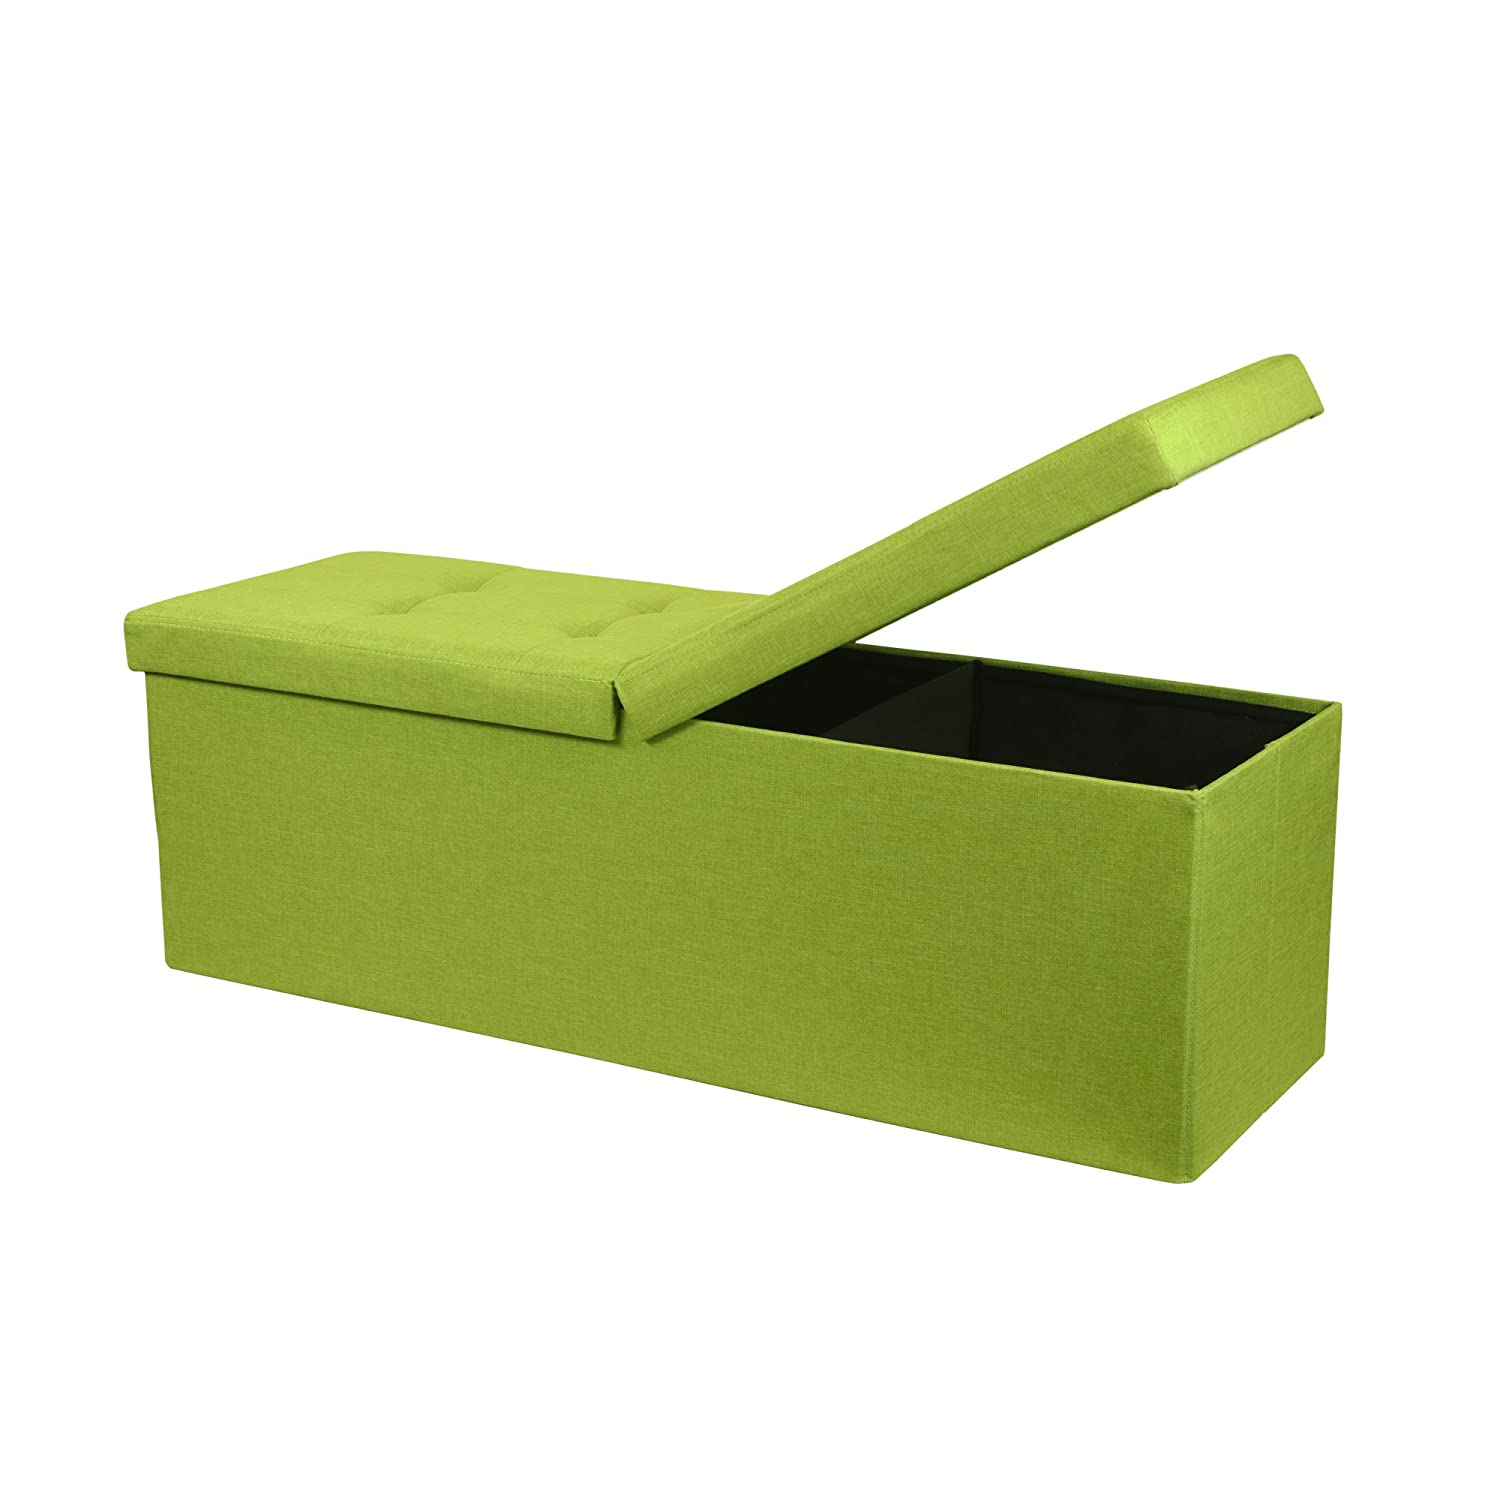 Otto & Ben 45 Storage Ottoman Folding Toy Box Chest Smart Lift Top Upholstered Tufted Bench Foot Rest, Lime Green Best Price Mattress 45 Storage Ottoman